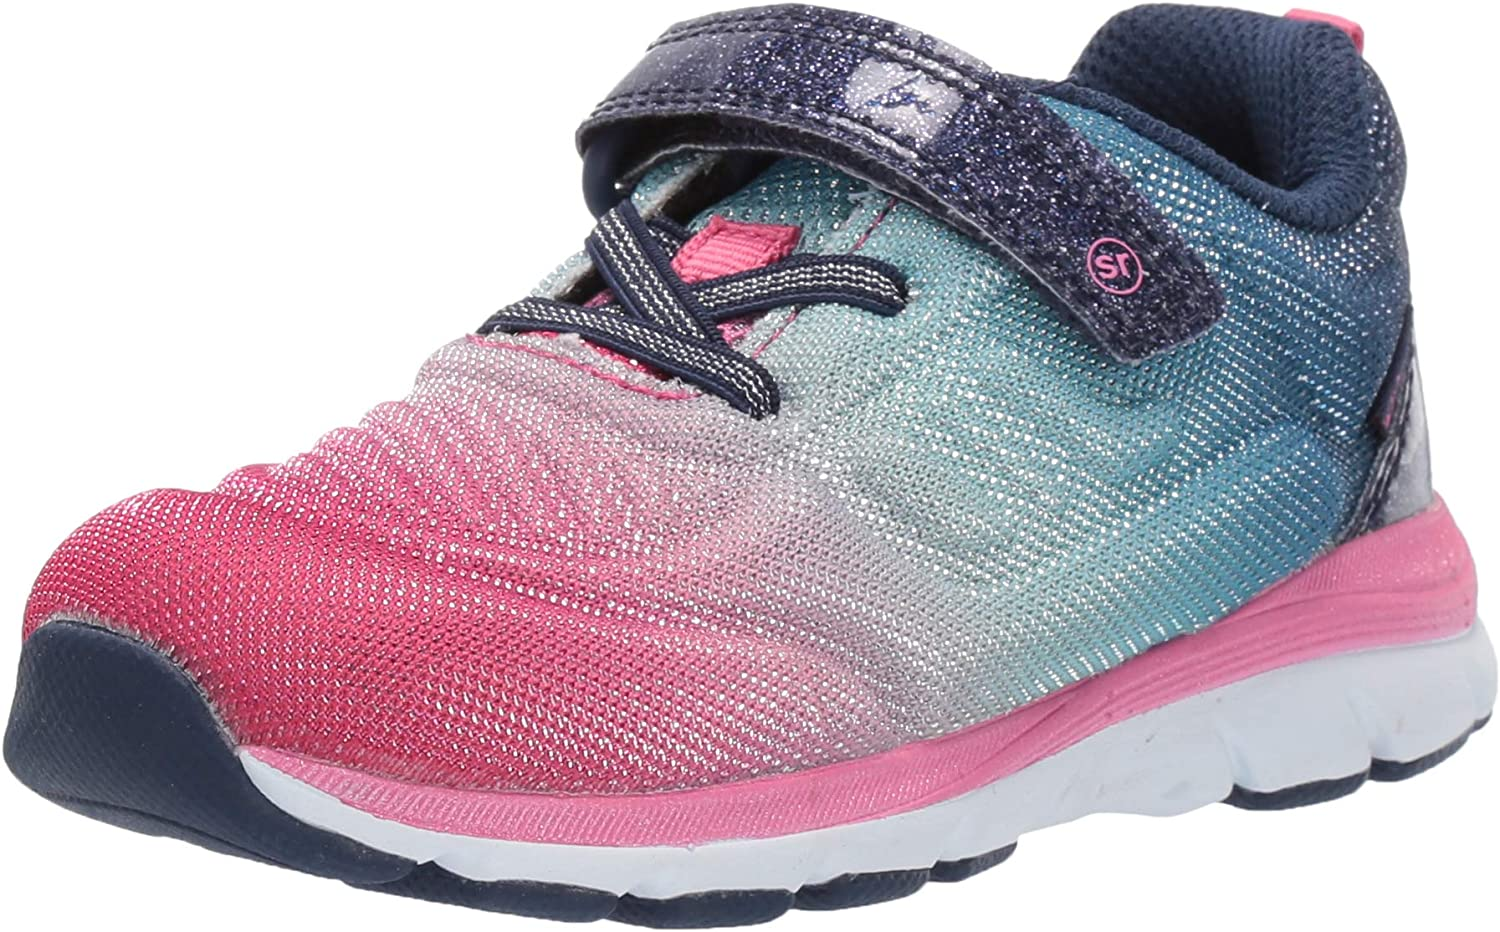 Stride Rite Made2Play Toddler Little Cora Ranking TOP14 Girls and Big Athelti Ranking TOP3